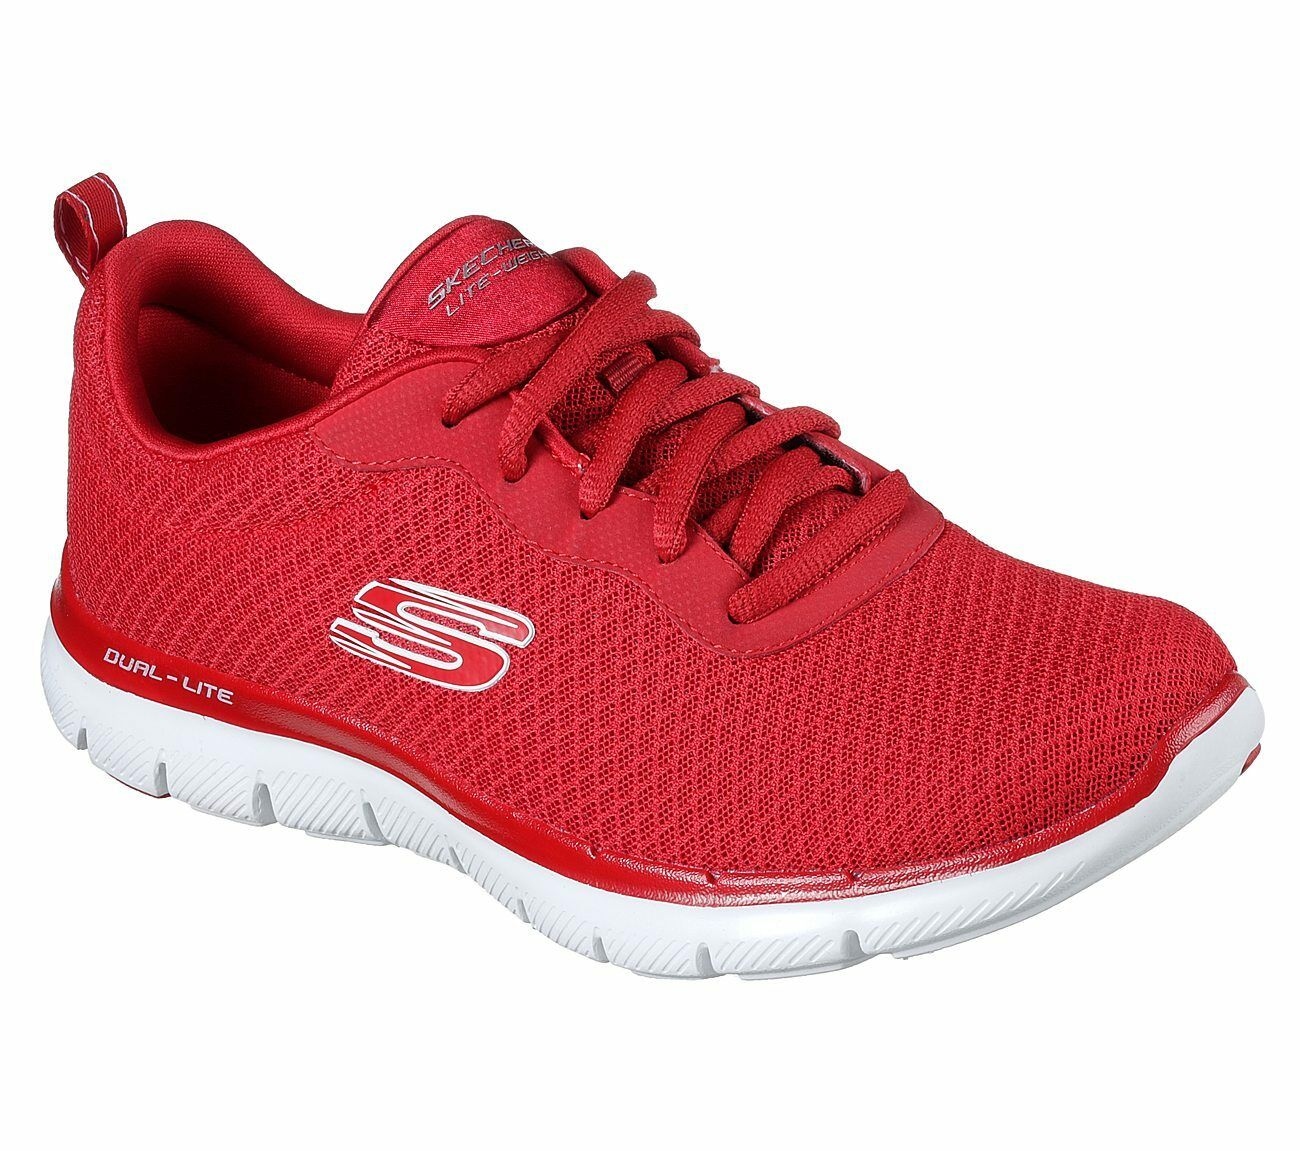 Skechers Red shoes Women Memory Foam Sport Train Walk Comfort Casual Mesh 12775